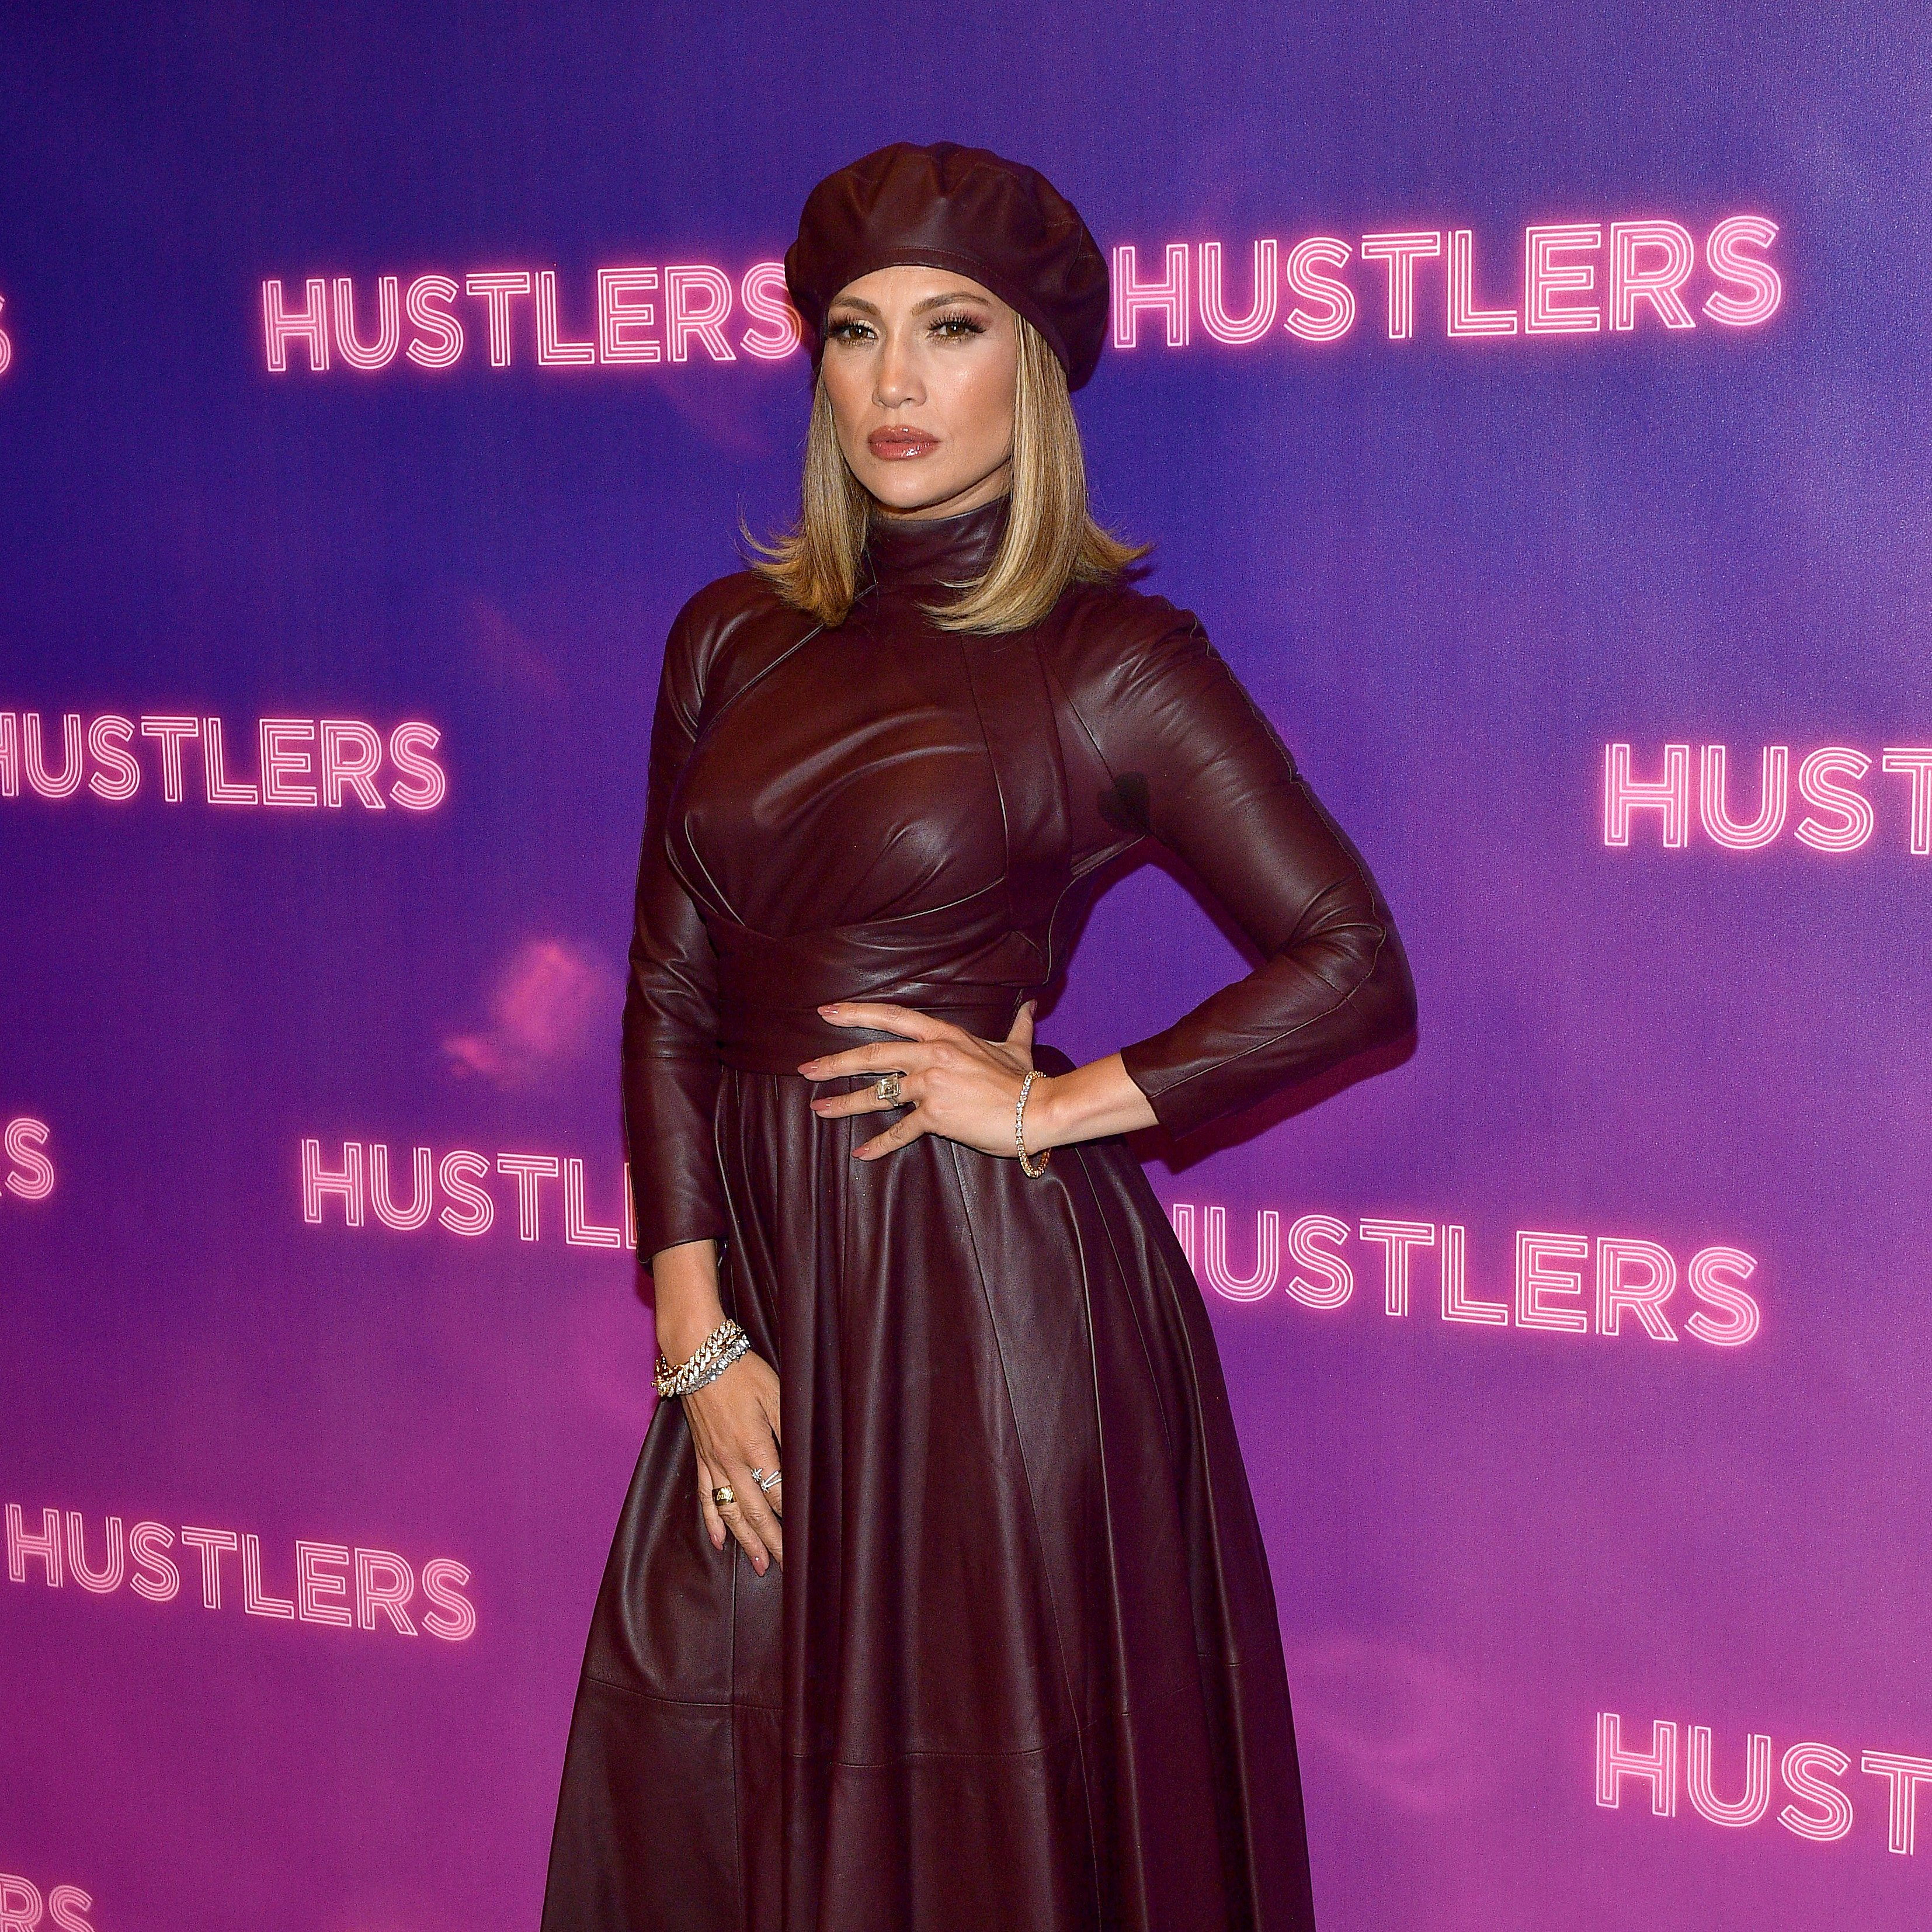 Image Credit: Getty Images / Jennifer Lopez on the red carpet for her new movie, Hustlers.